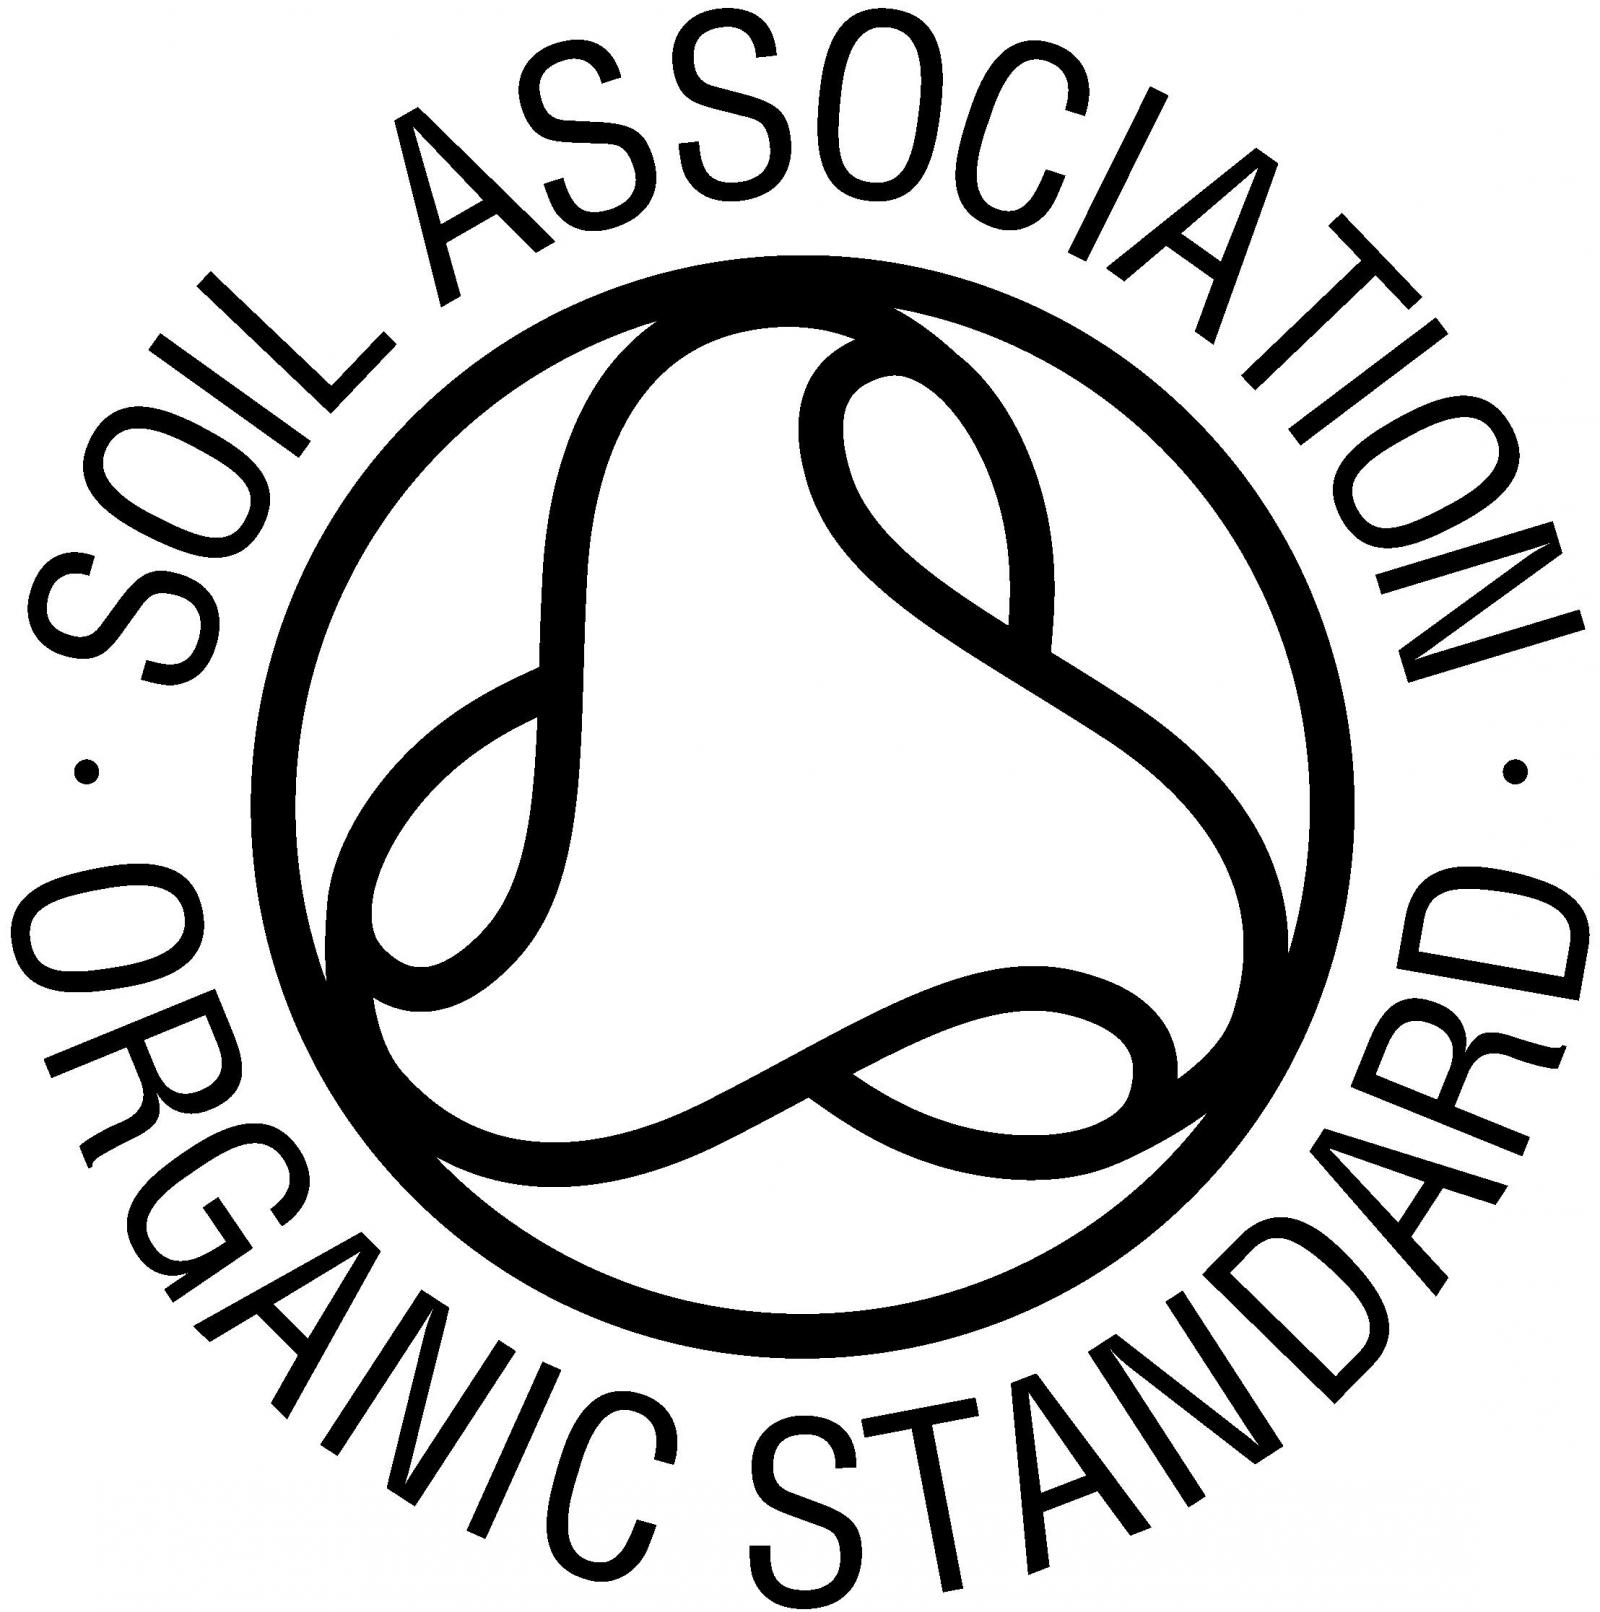 certifikat-organic_soil_association-1